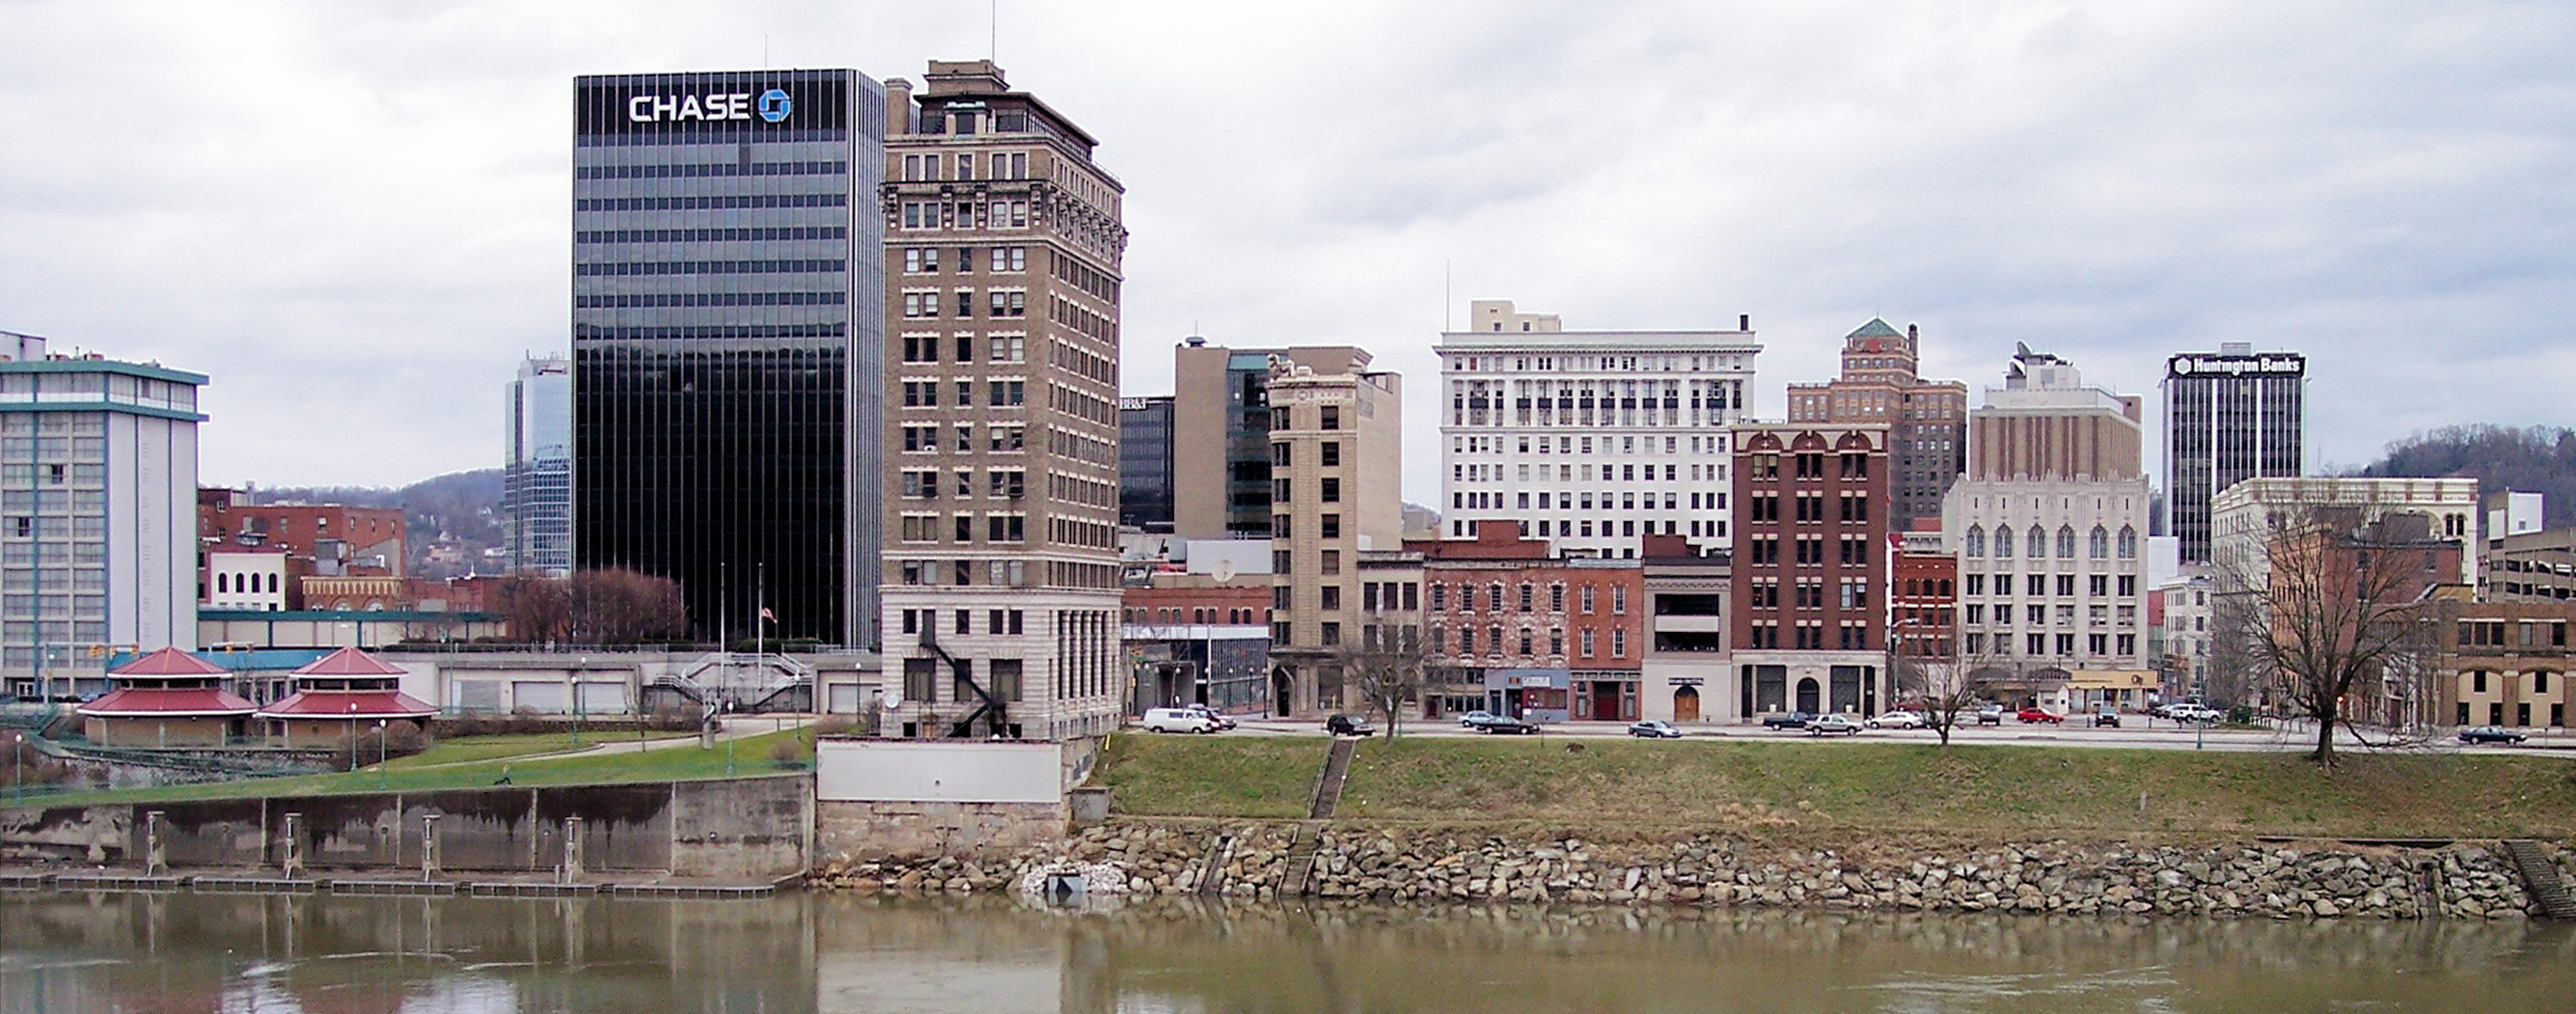 A view of Charleston from the south side of the Kanawha River shows Chase Bank Tower, formerly Charleston National Bank.